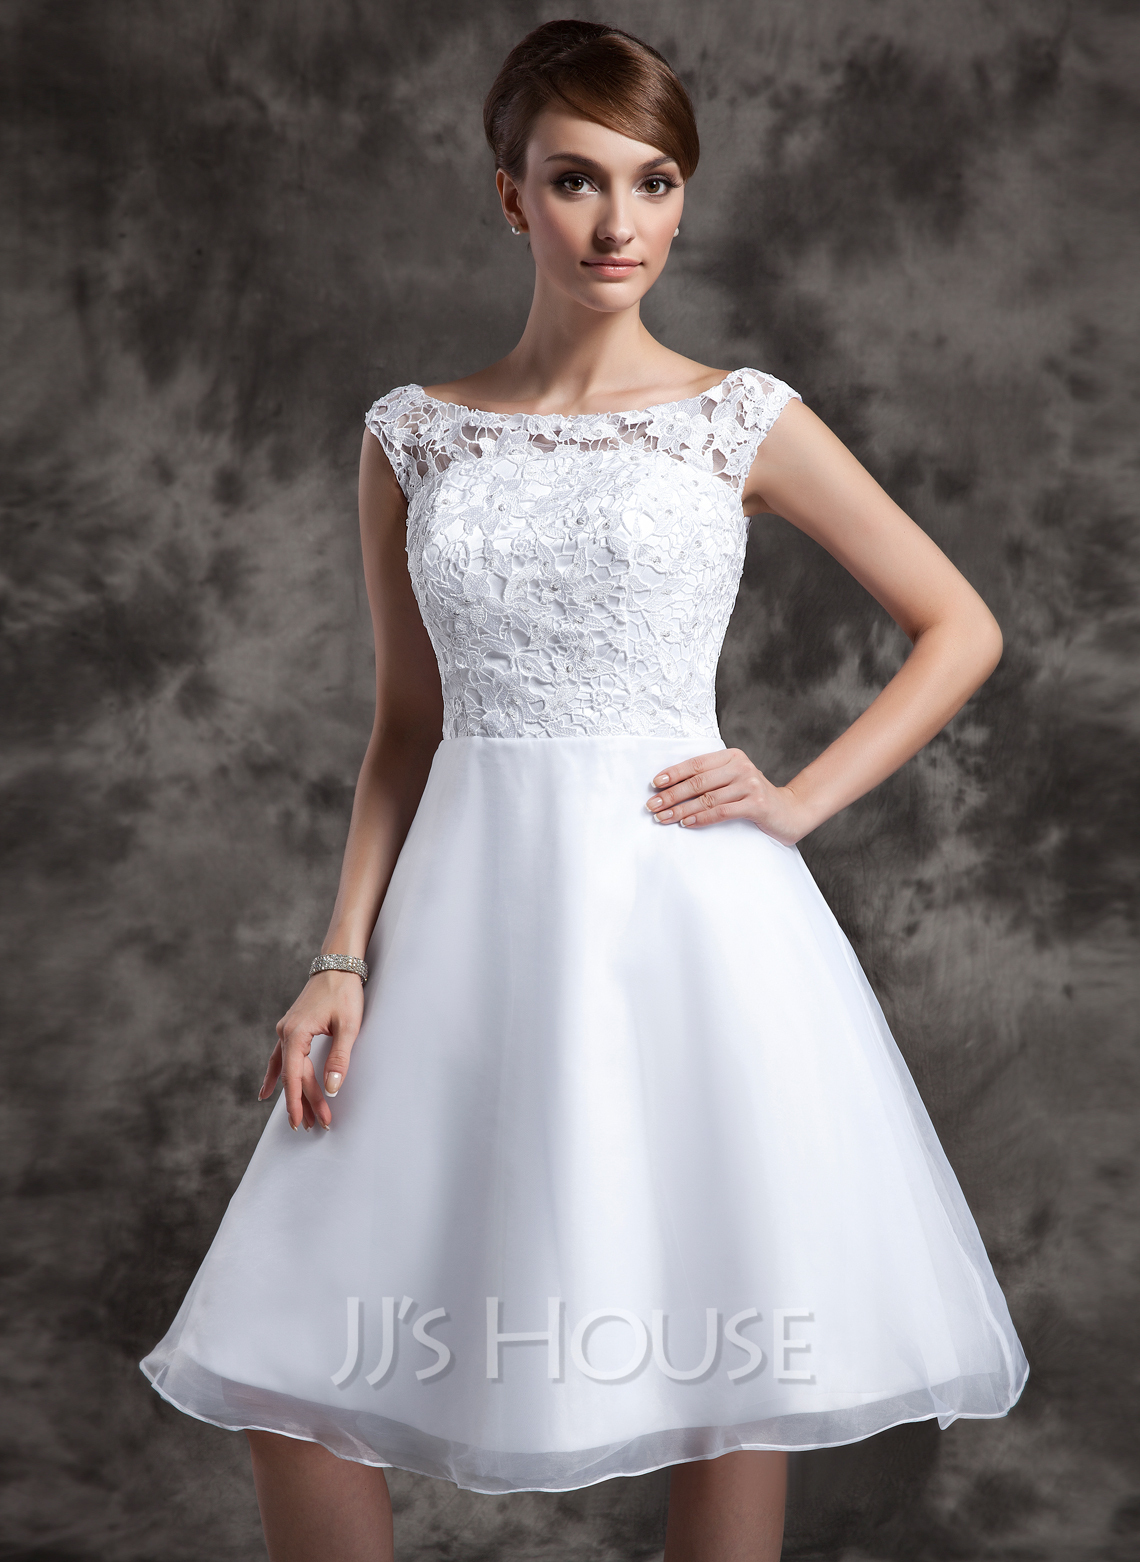 2cb2dac057 A-Line Princess Scoop Neck Knee-Length Organza Lace Wedding Dress. Loading  zoom